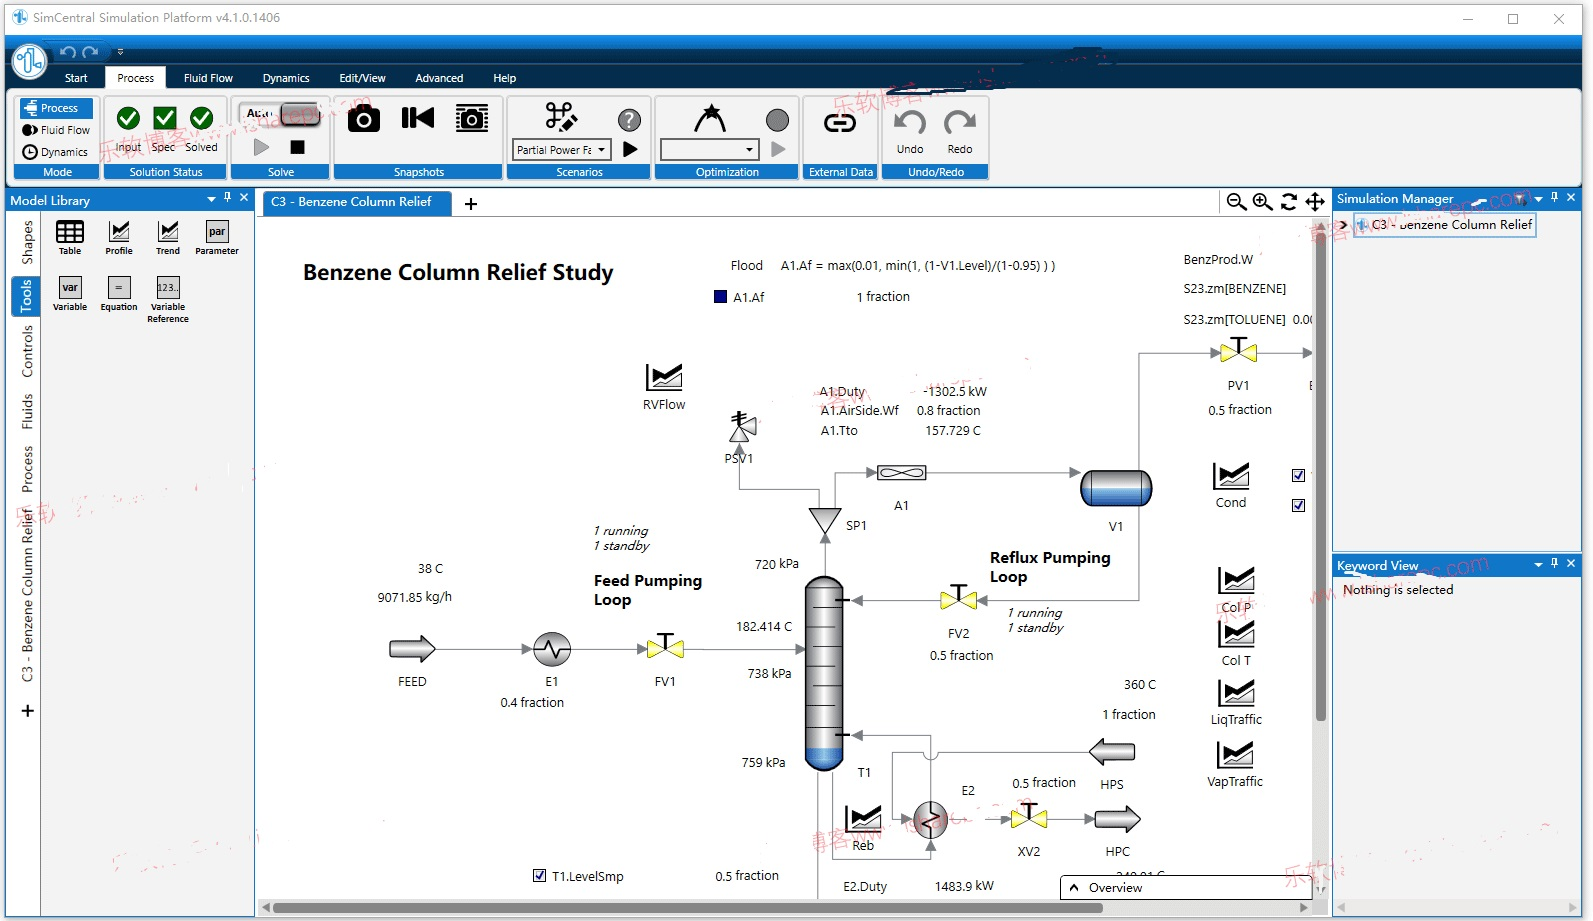 Working with AVEVA SimCentral Simulation Platform 4.1.0 full license